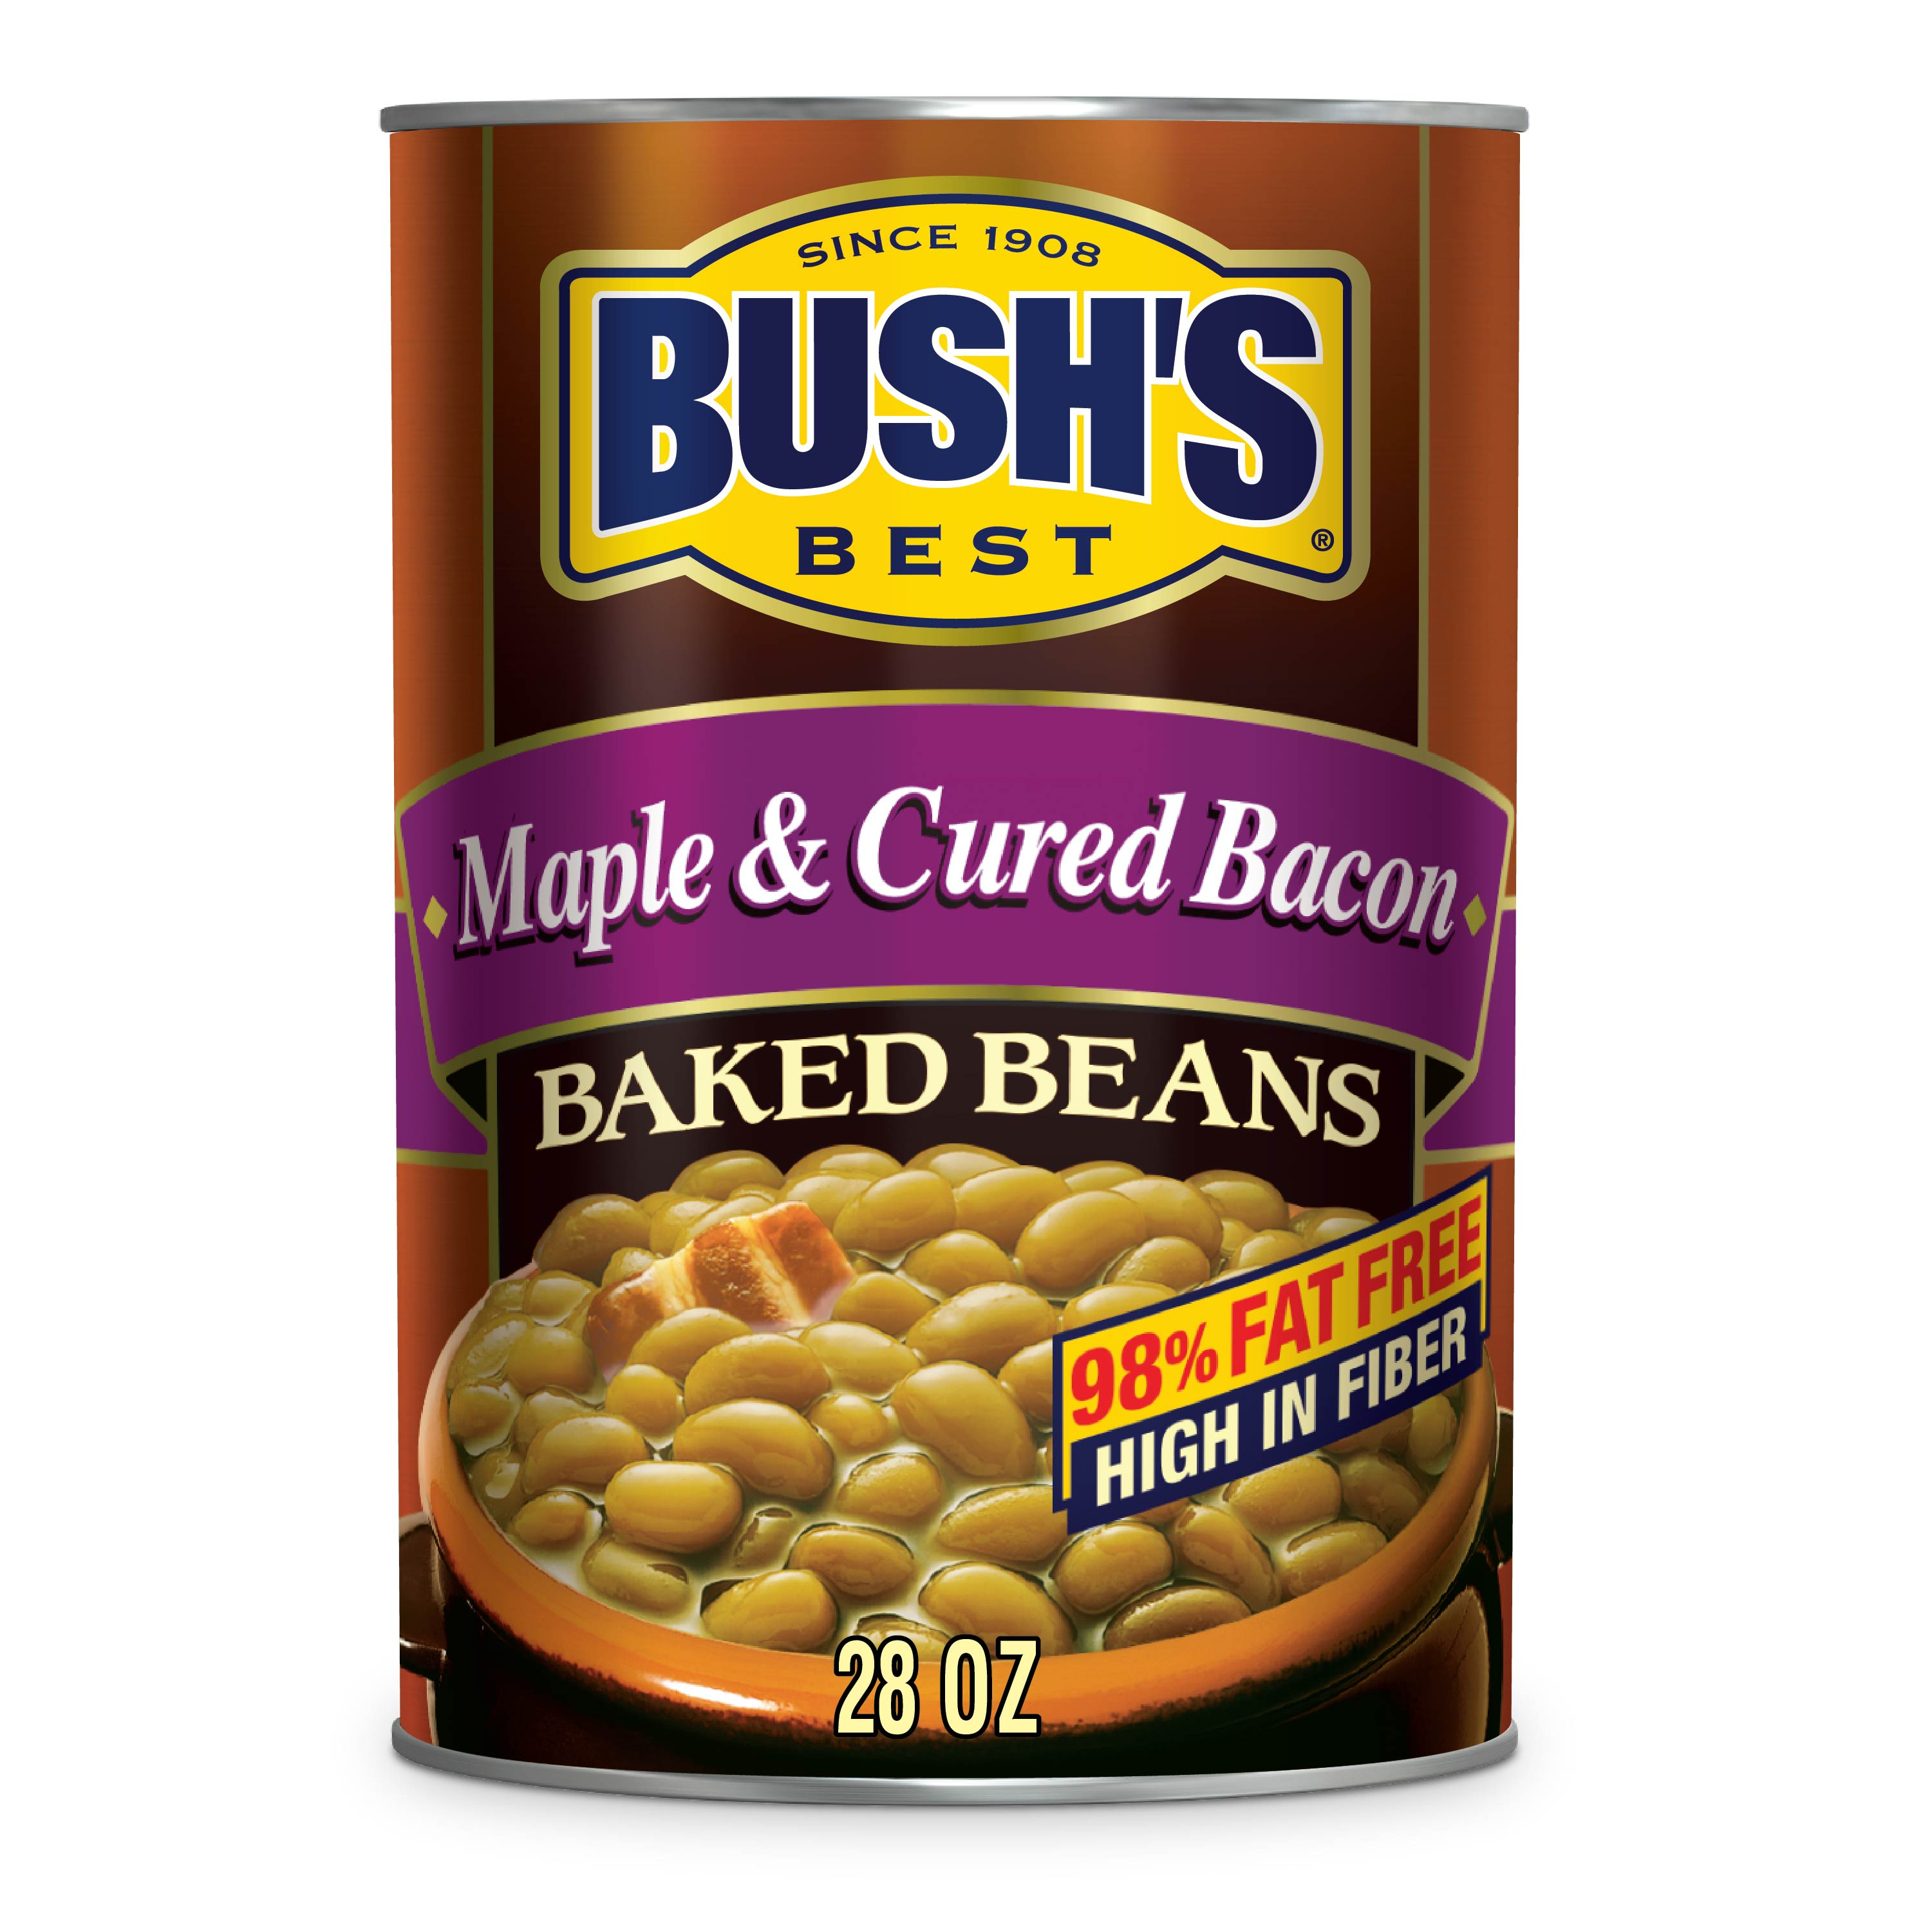 BUSH'S Maple & Cured Bacon Baked Beans 28 oz